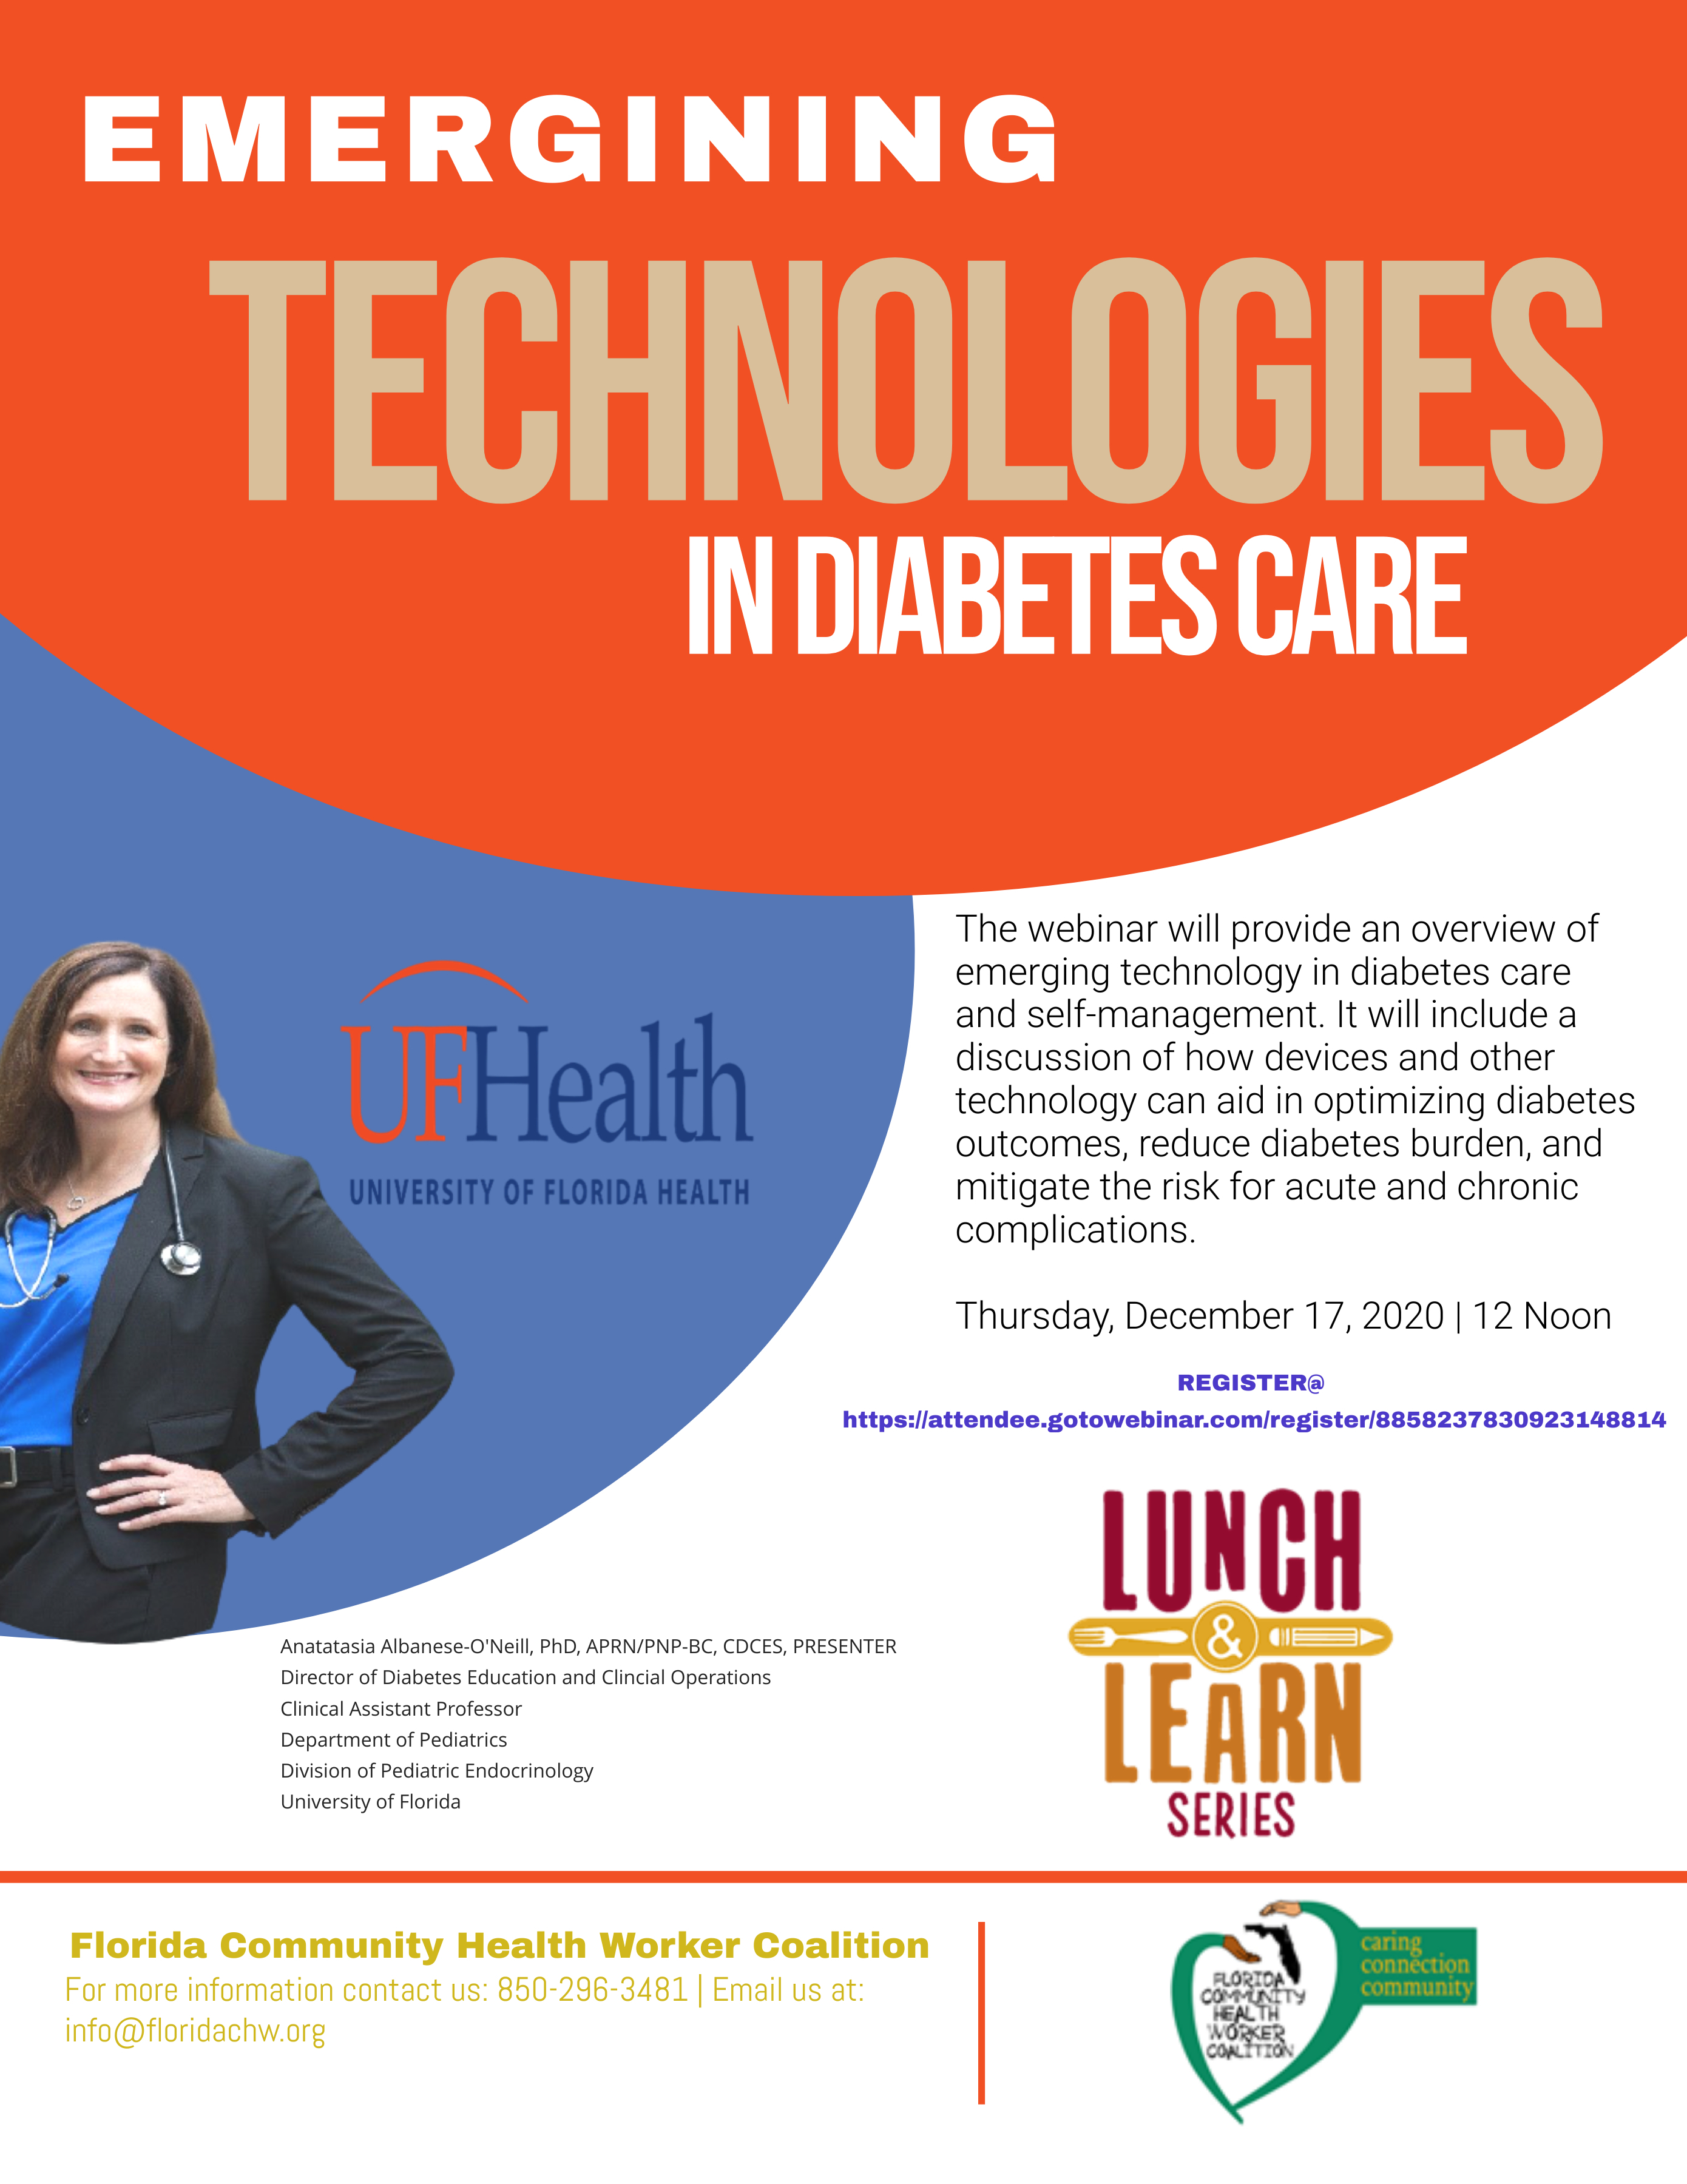 Emerging Technologies in Diabetes Care